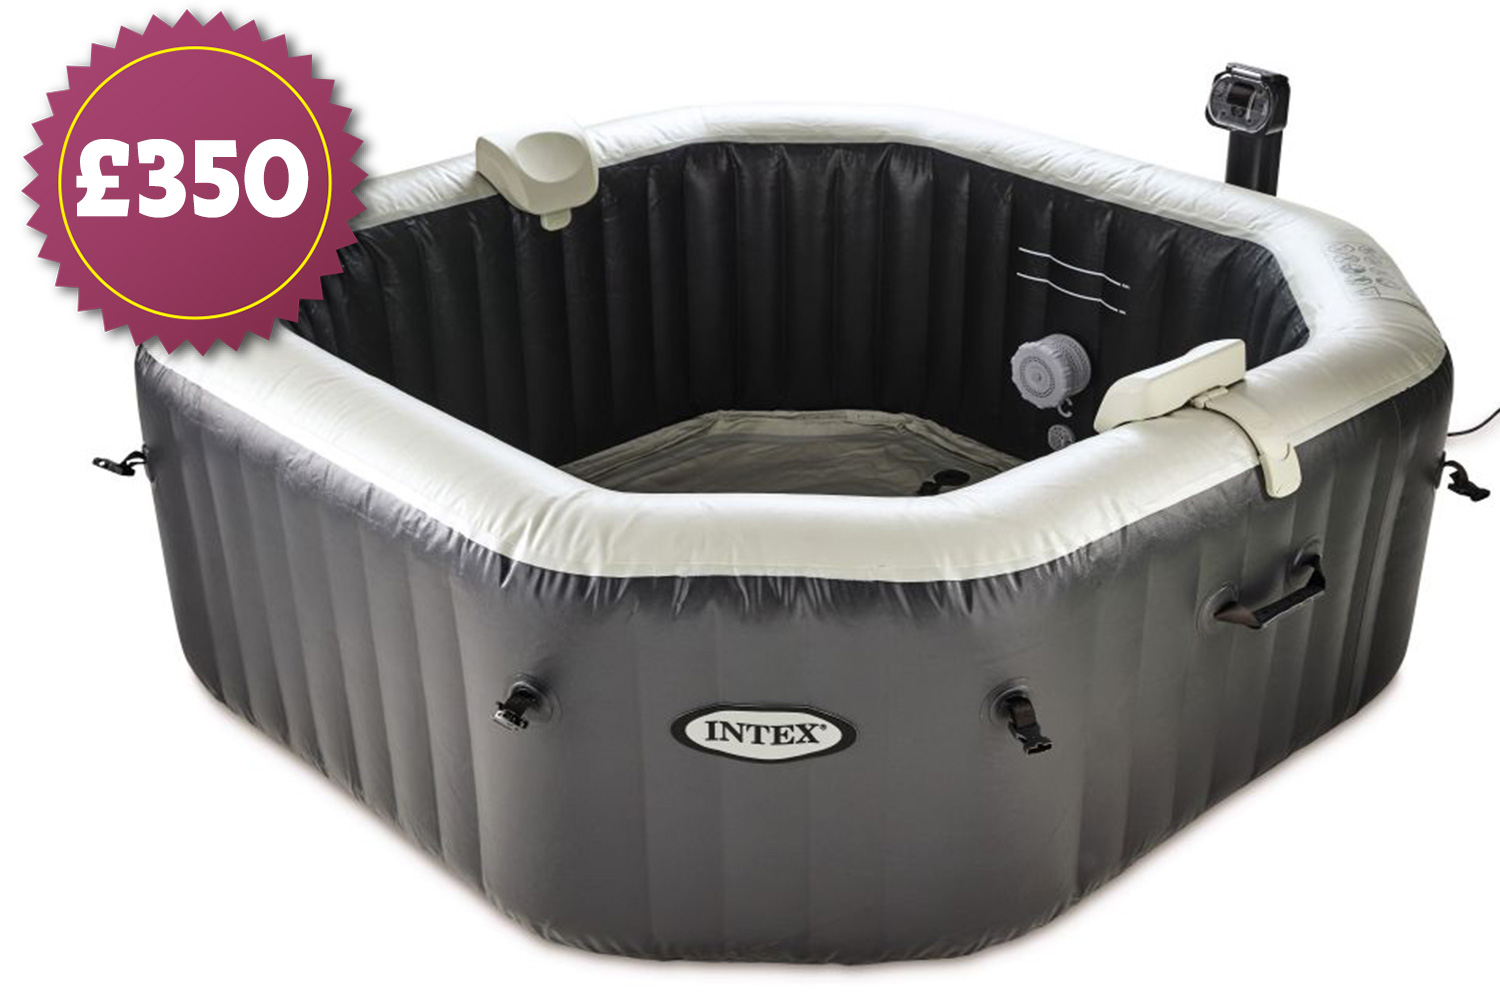 Jacuzzi Pool Top Caps Aldi S Sell Out 350 Inflatable Hot Tub Is Back This Weekend